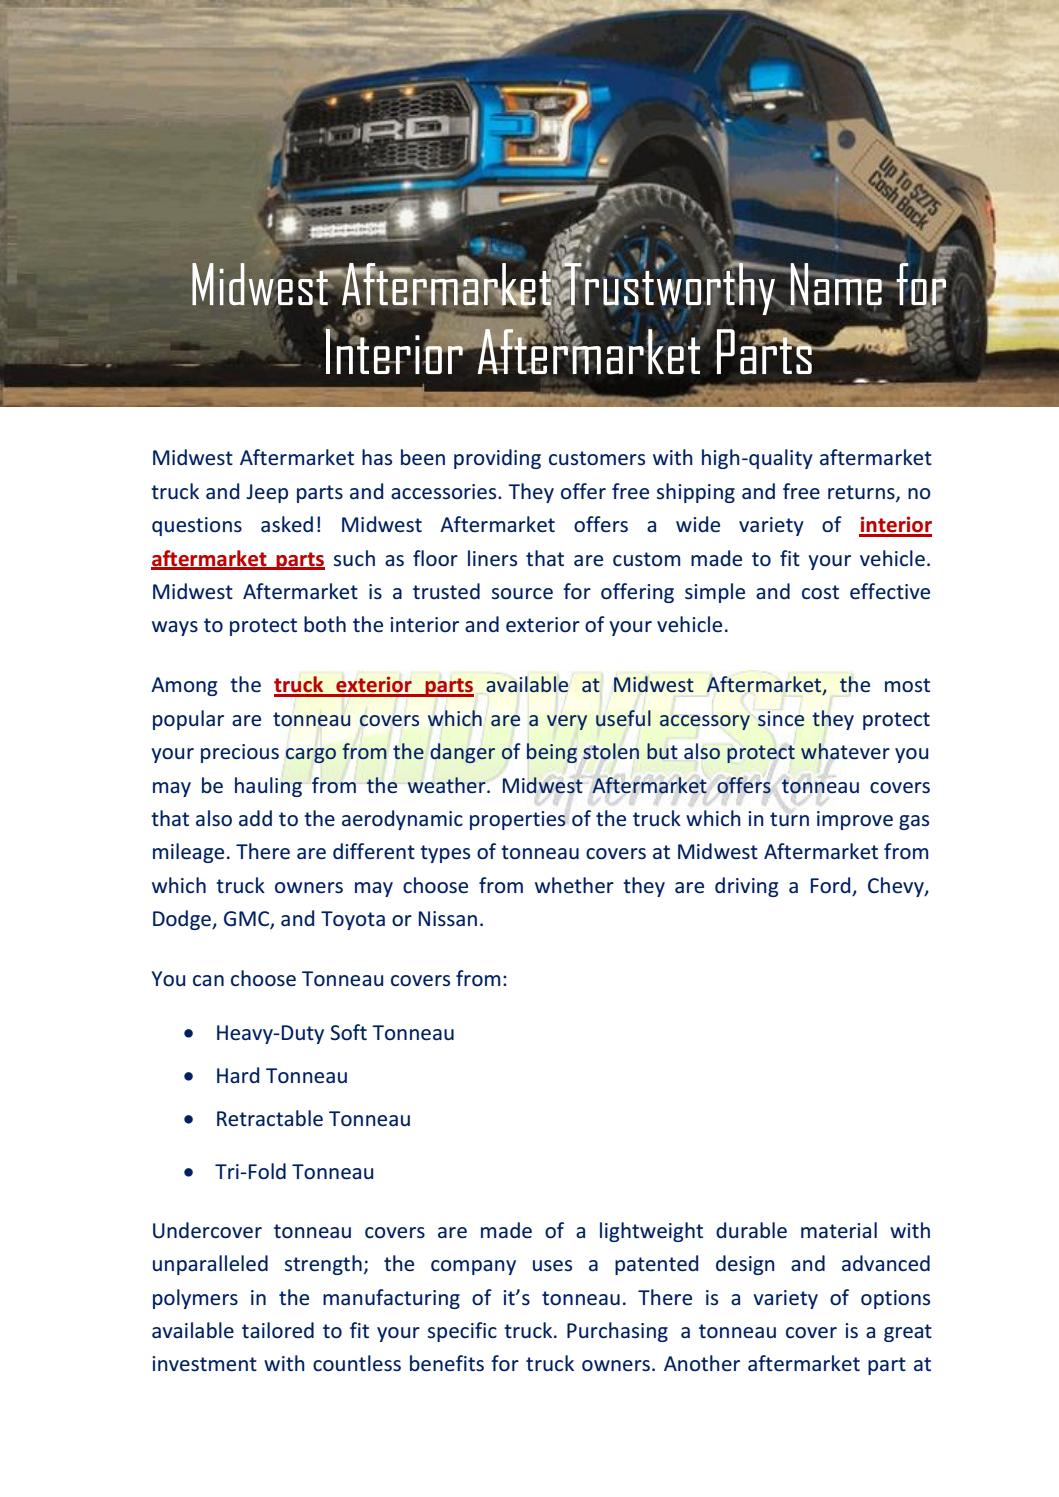 Midwest Aftermarket Trustworthy Name For Interior Aftermarket Parts By Midwest Aftermarket Issuu